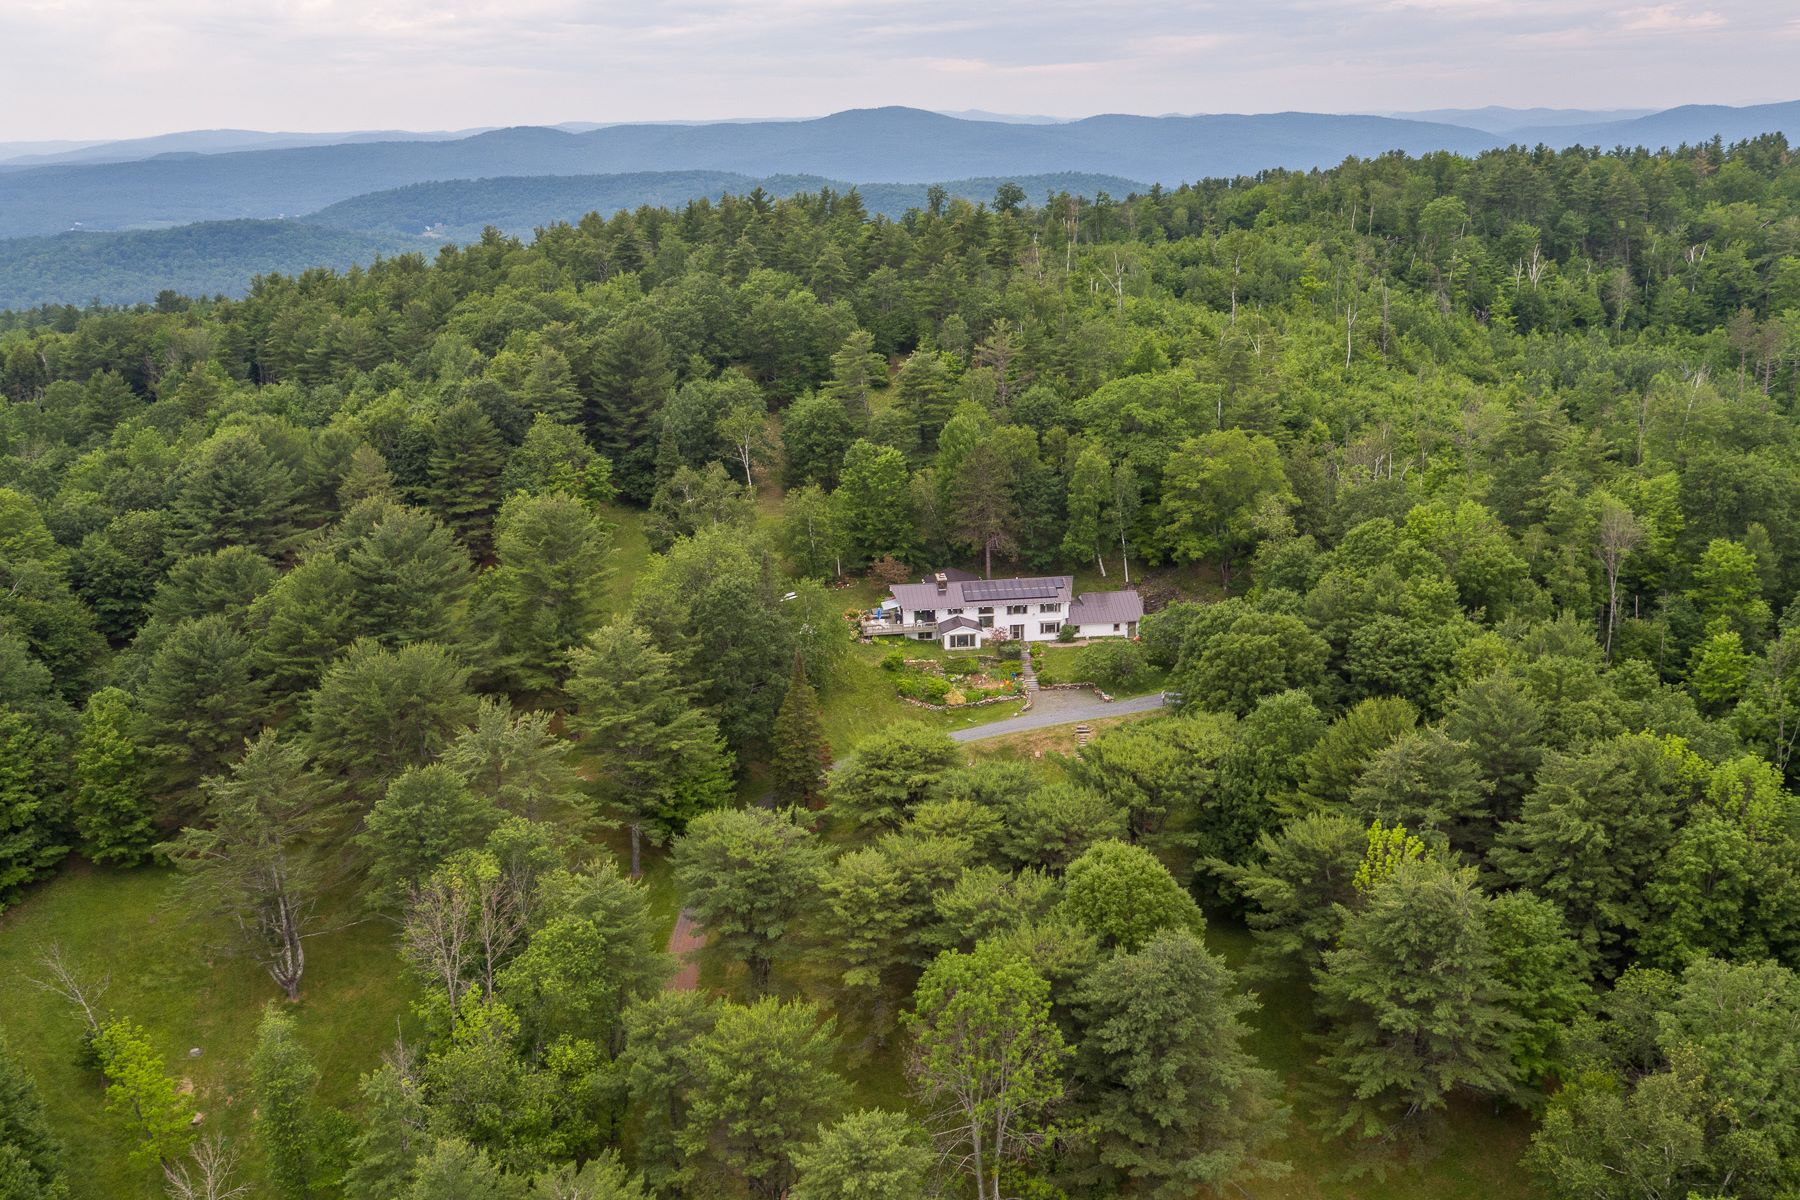 Single Family Homes for Sale at 83 Franklin Hill Road, Lyme 83 Franklin Hill Rd Lyme, New Hampshire 03768 United States